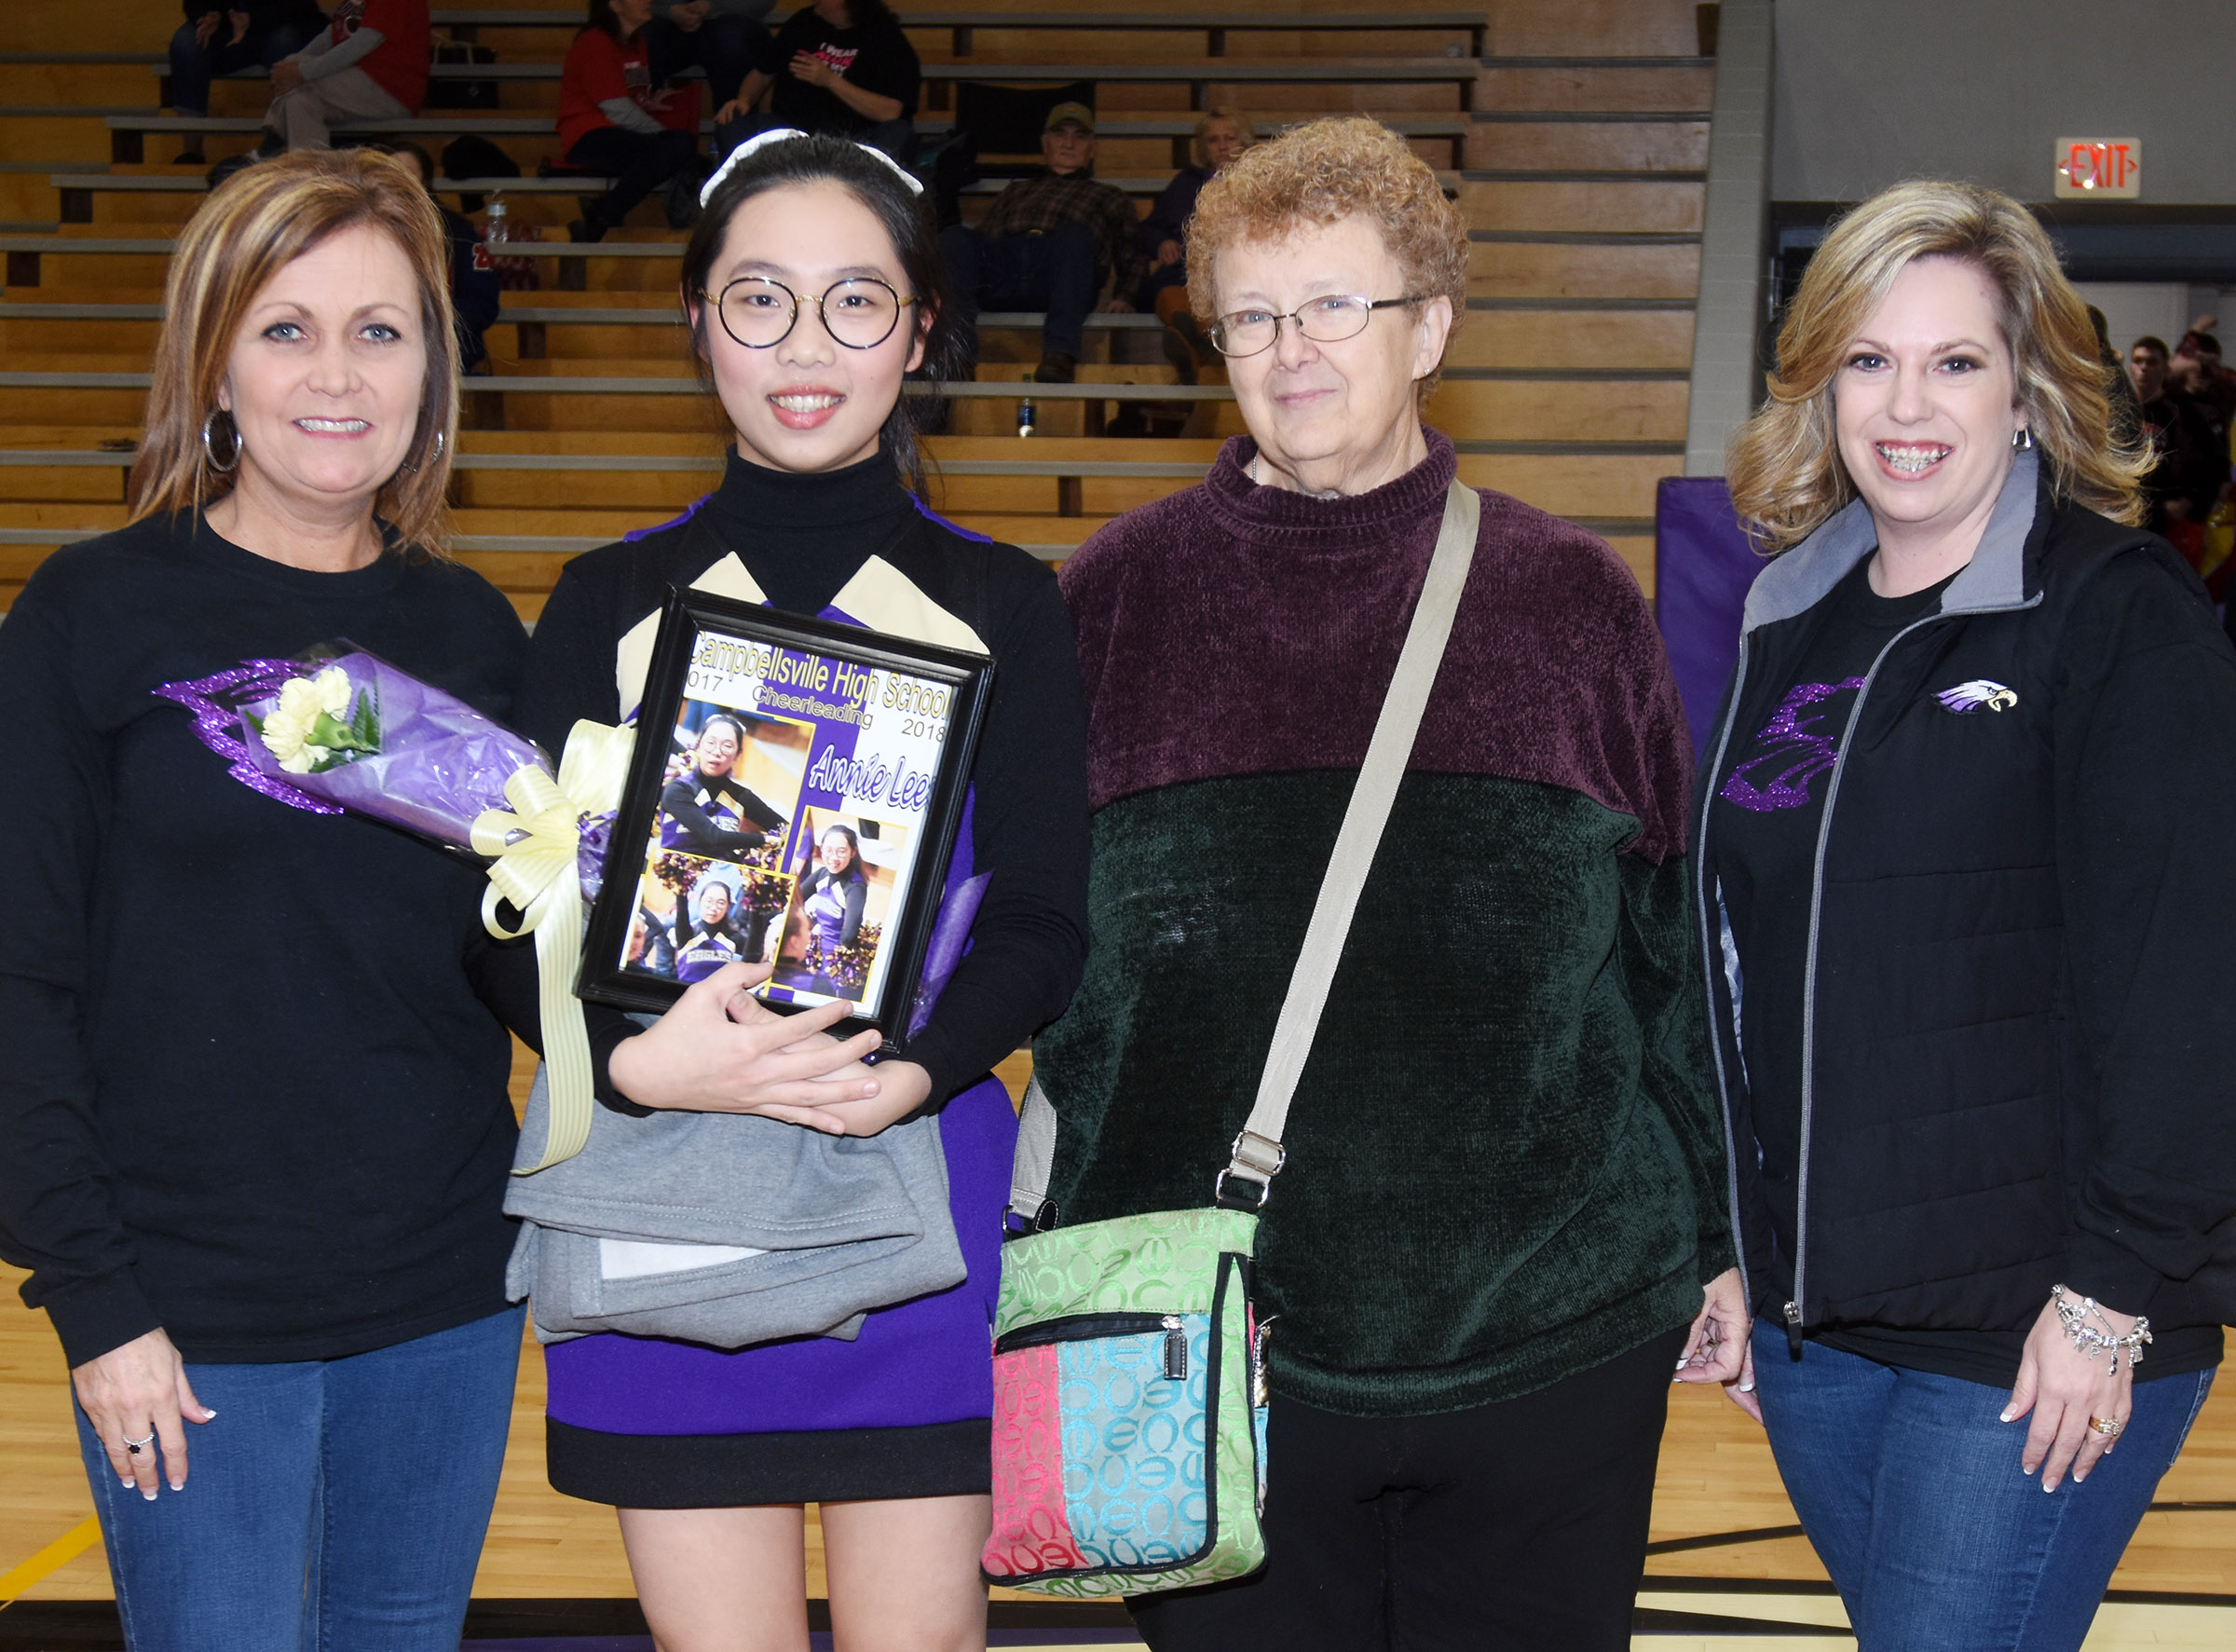 CHS cheerleader Annie Lee, an exchange student from Thailand, is honored. She is pictured with cheerleading coaches Lisa Wiseman, at left, and Nikki Price, and her host mother, Kathleen Lesperance.